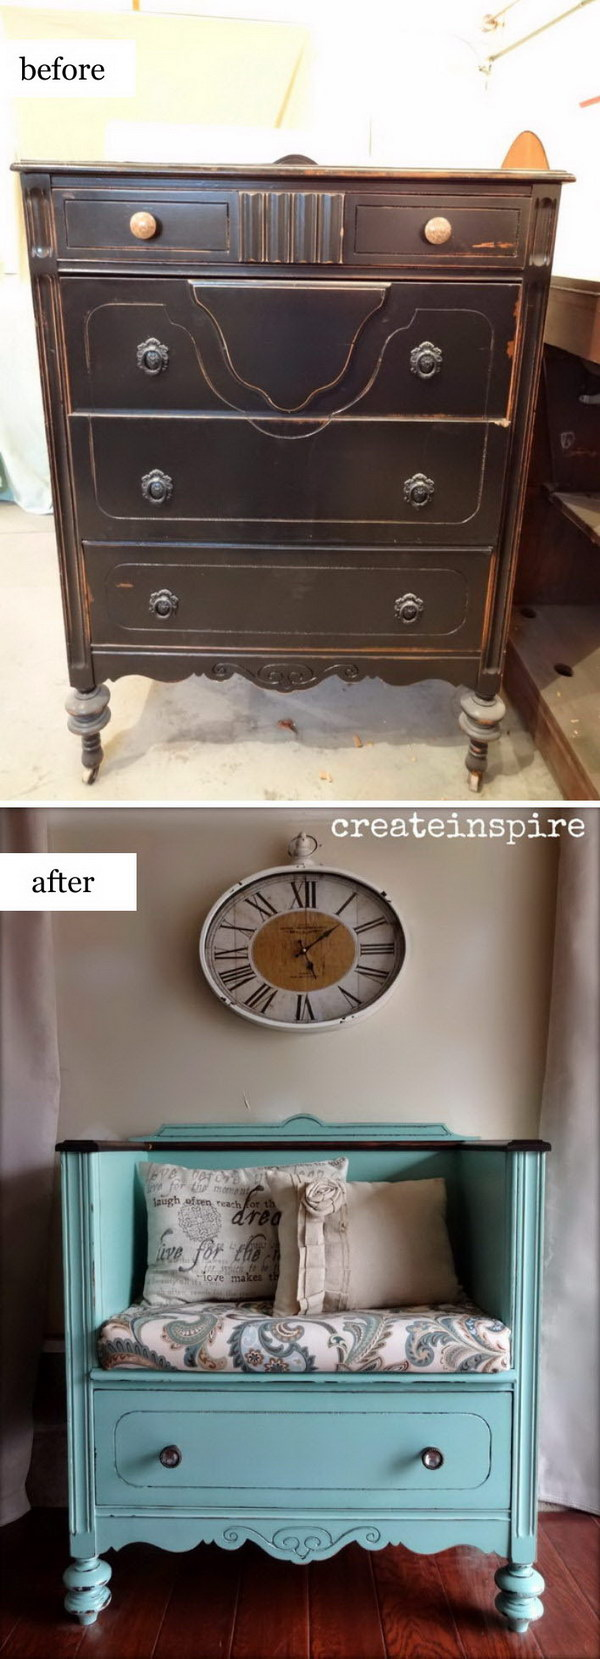 Rounded Kitchen Island 40 Awesome Makeovers: Clever Ways With Tutorials To